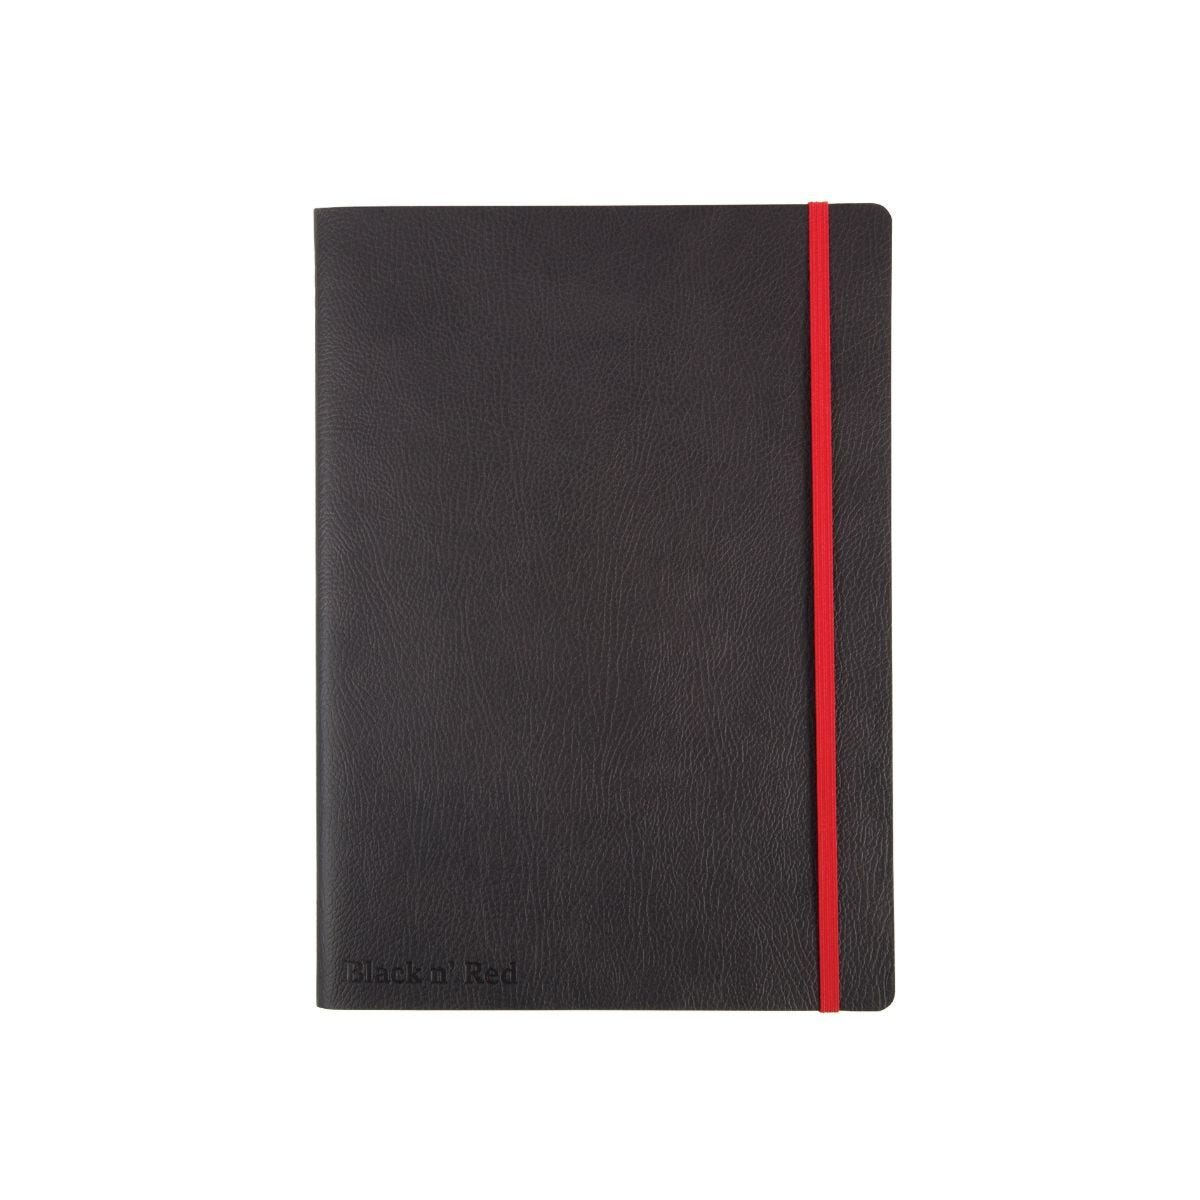 Oxford Black n Red B5 Business Journal 144 Pages Soft Cover Ruled